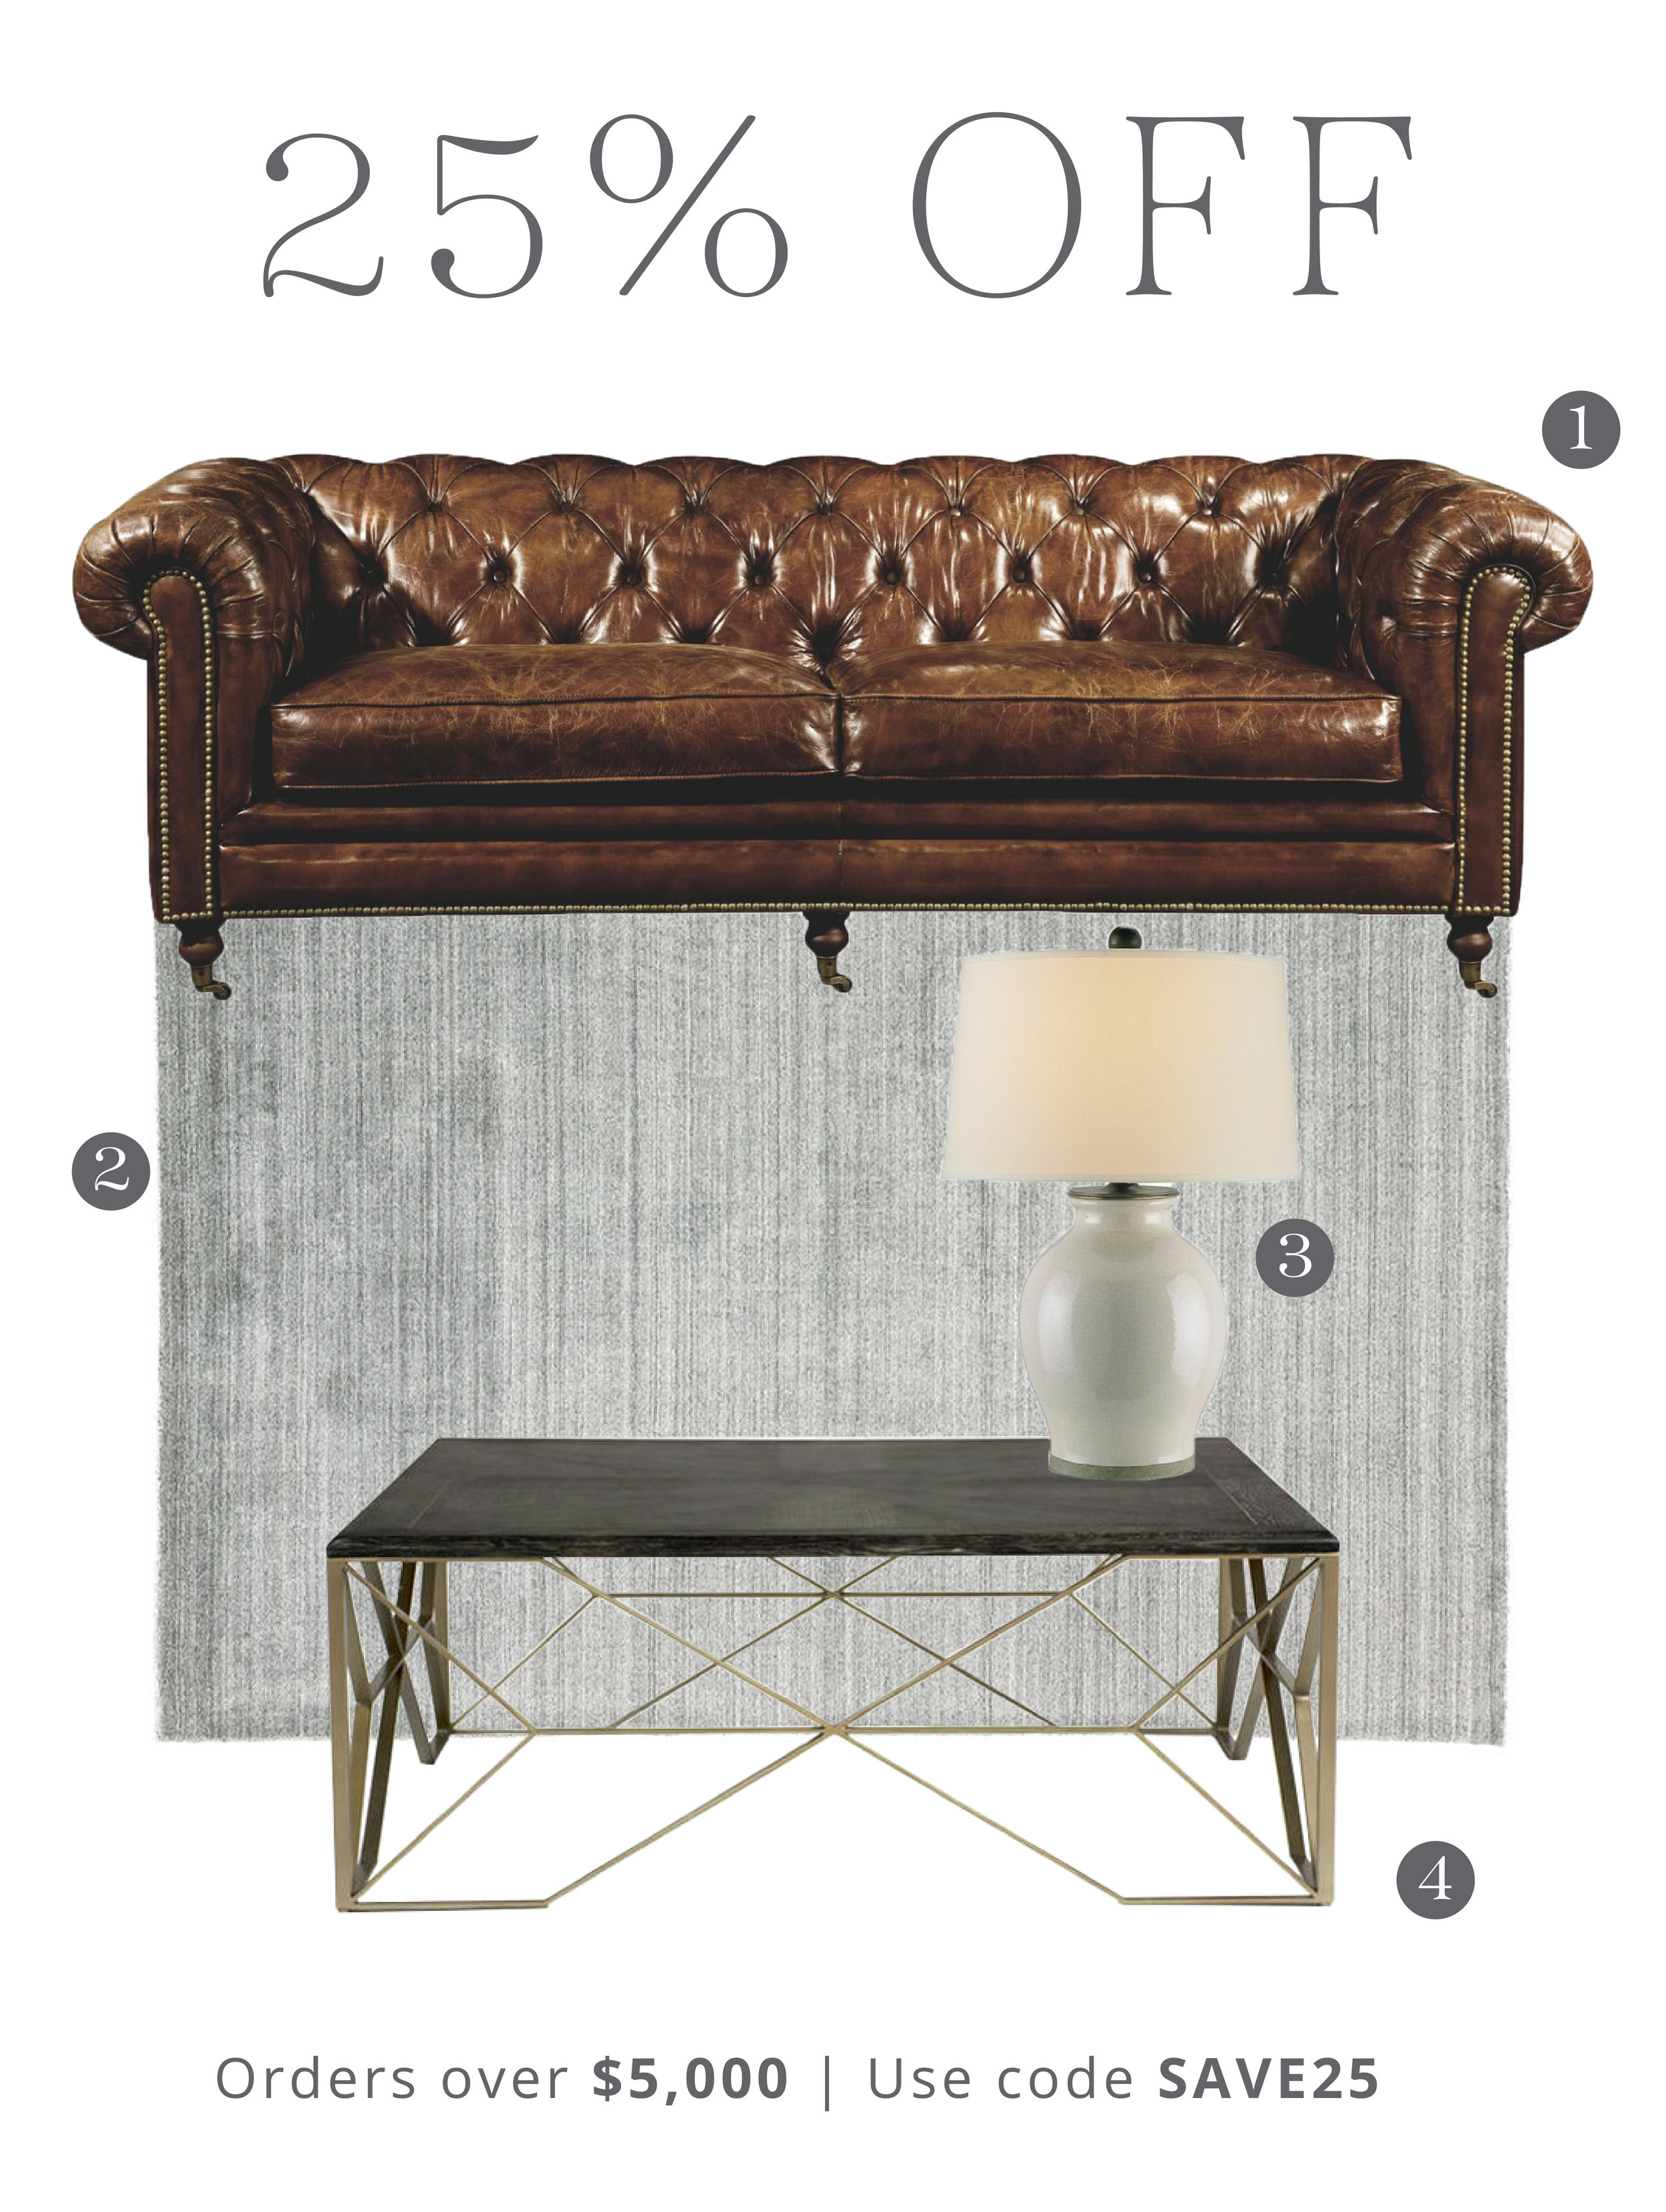 1.  Birmingham Sofa  | 2.  Lefka Rug  | 3.  Fittleworth Lamp  | 4.  Theodore Coffee Table